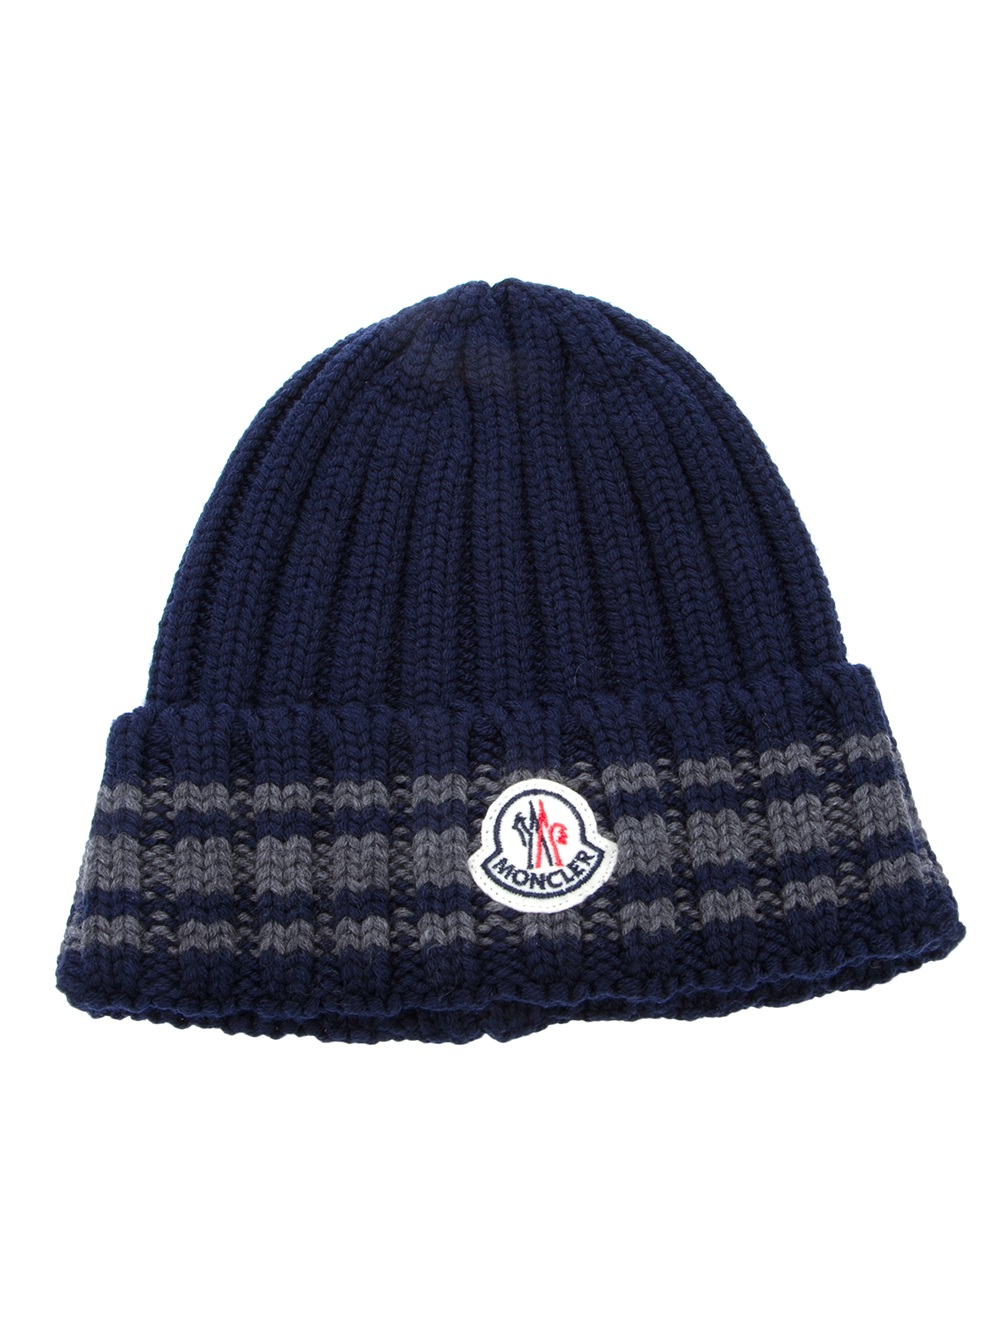 3b9507a9243 Lyst - Moncler Moncler Chunky Knit Hat in Blue for Men